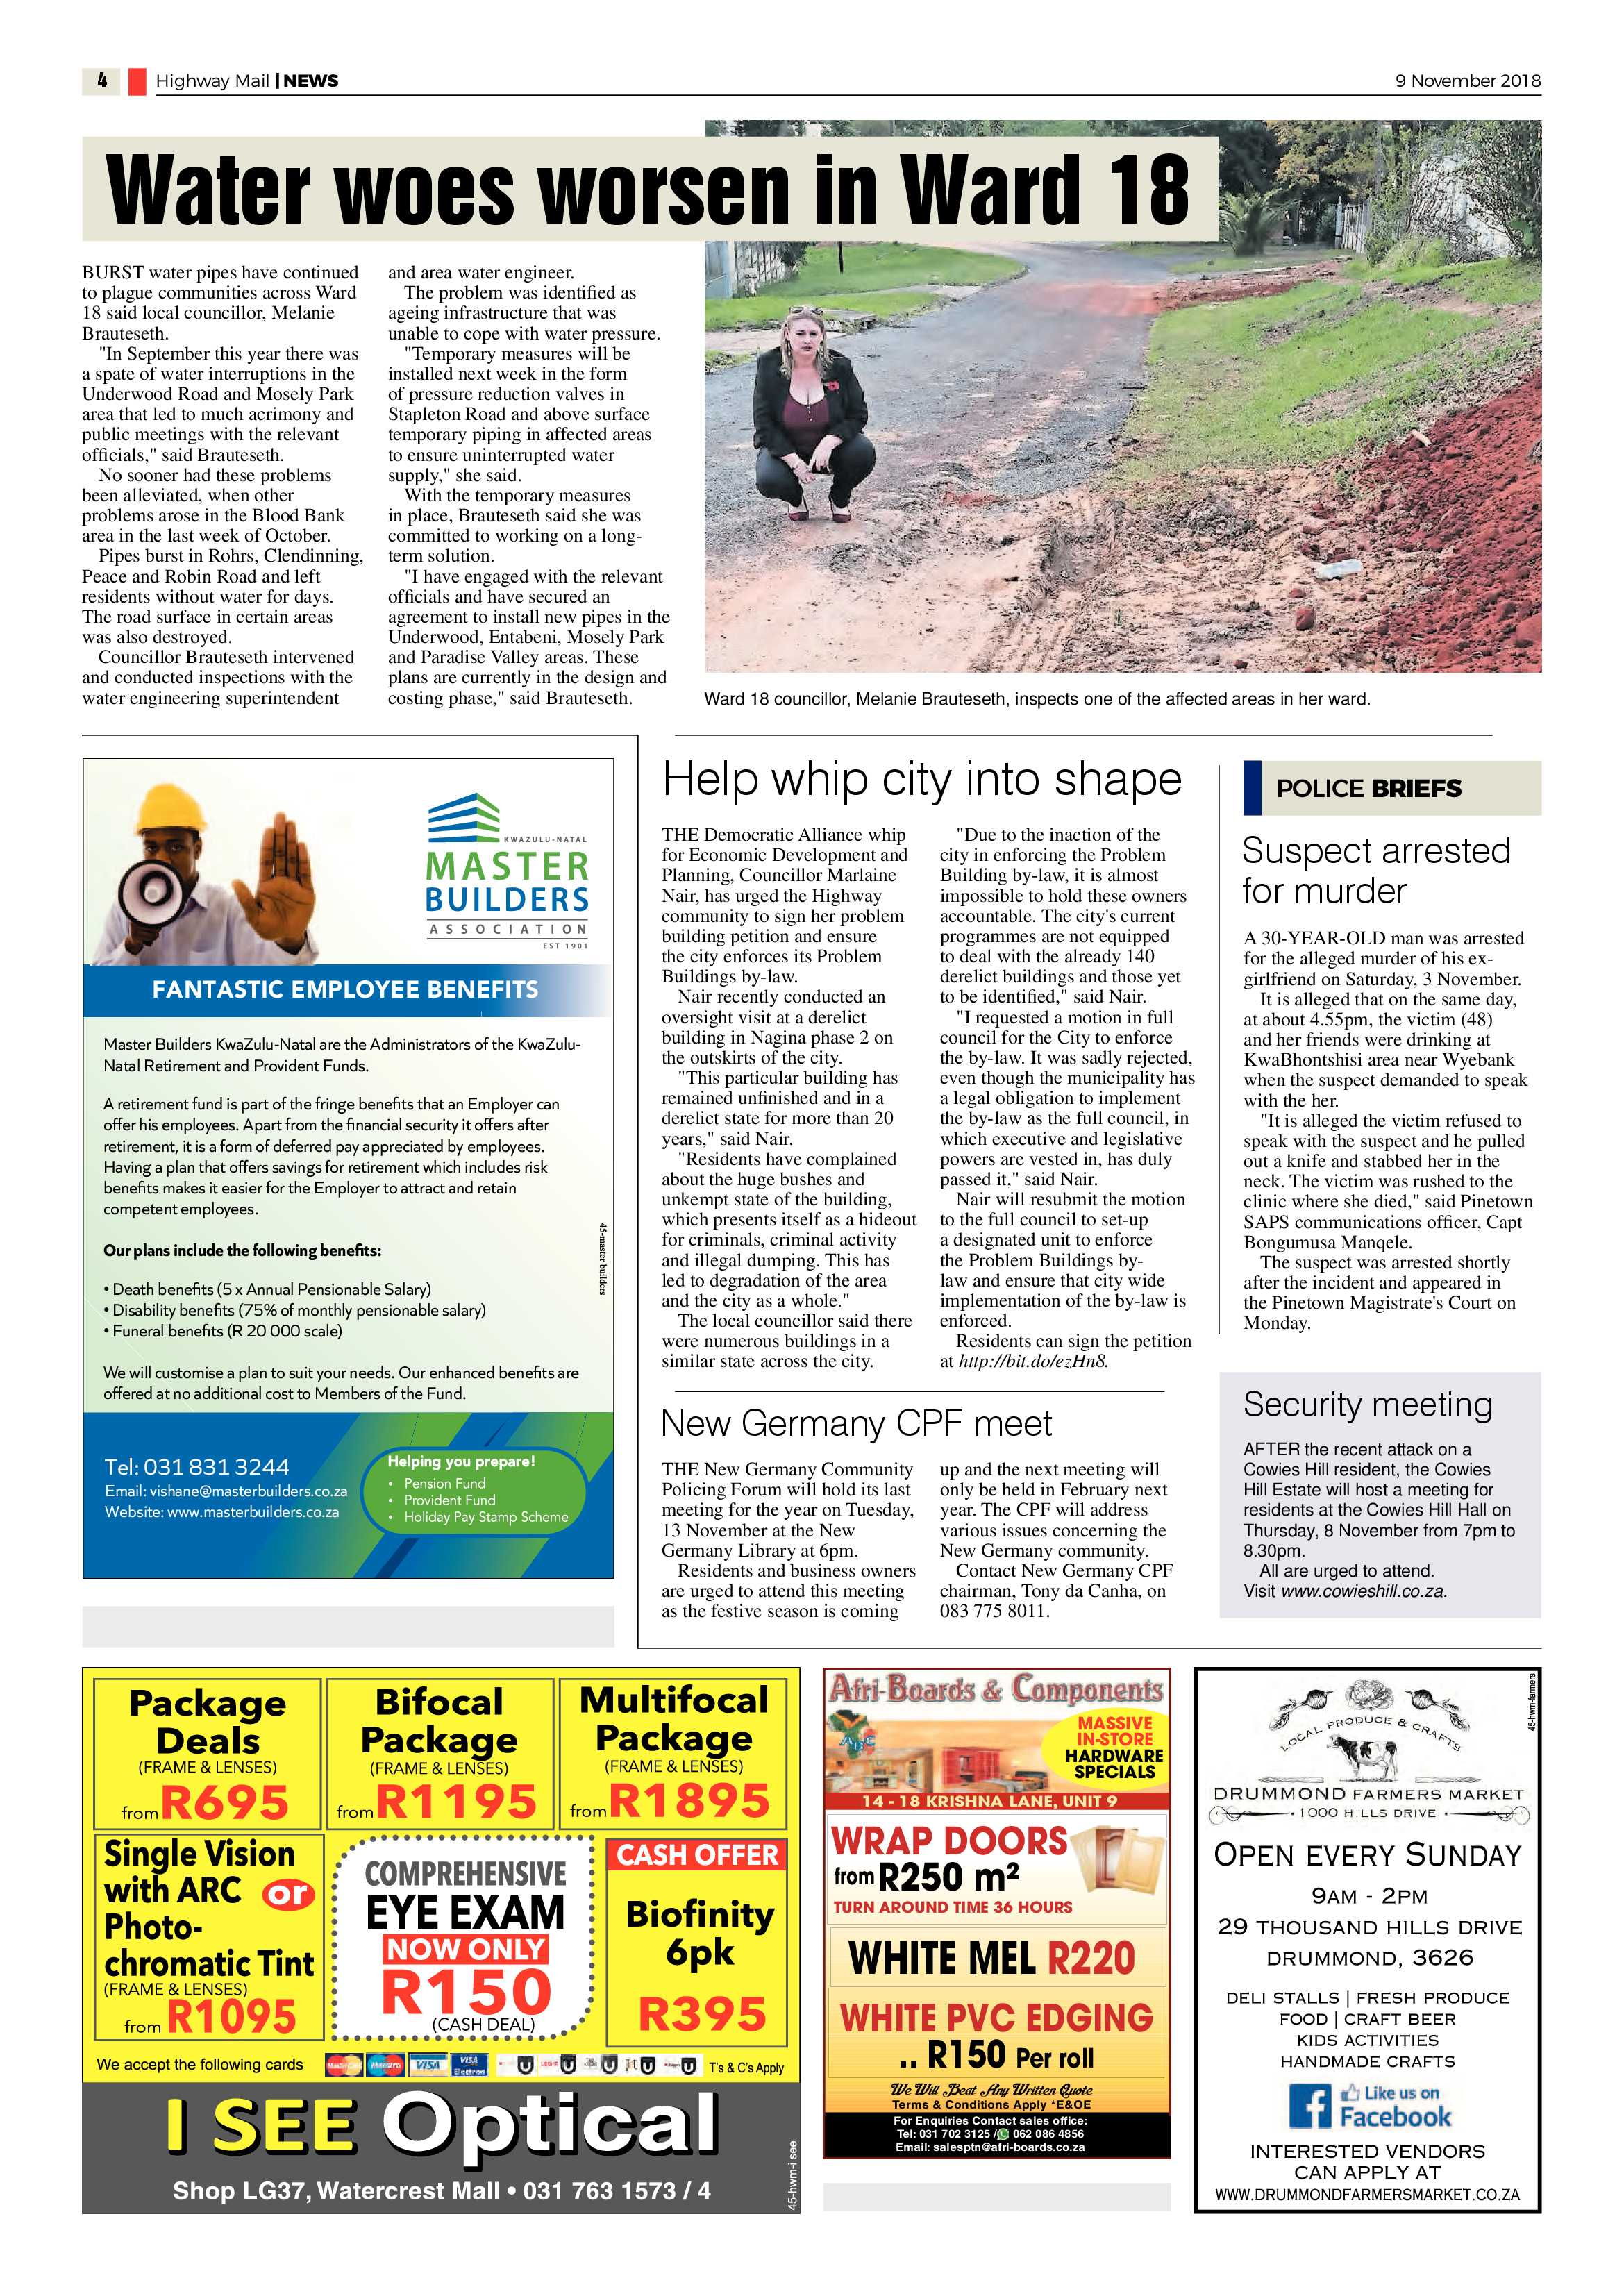 highway-mail-9-november-2018-epapers-page-4